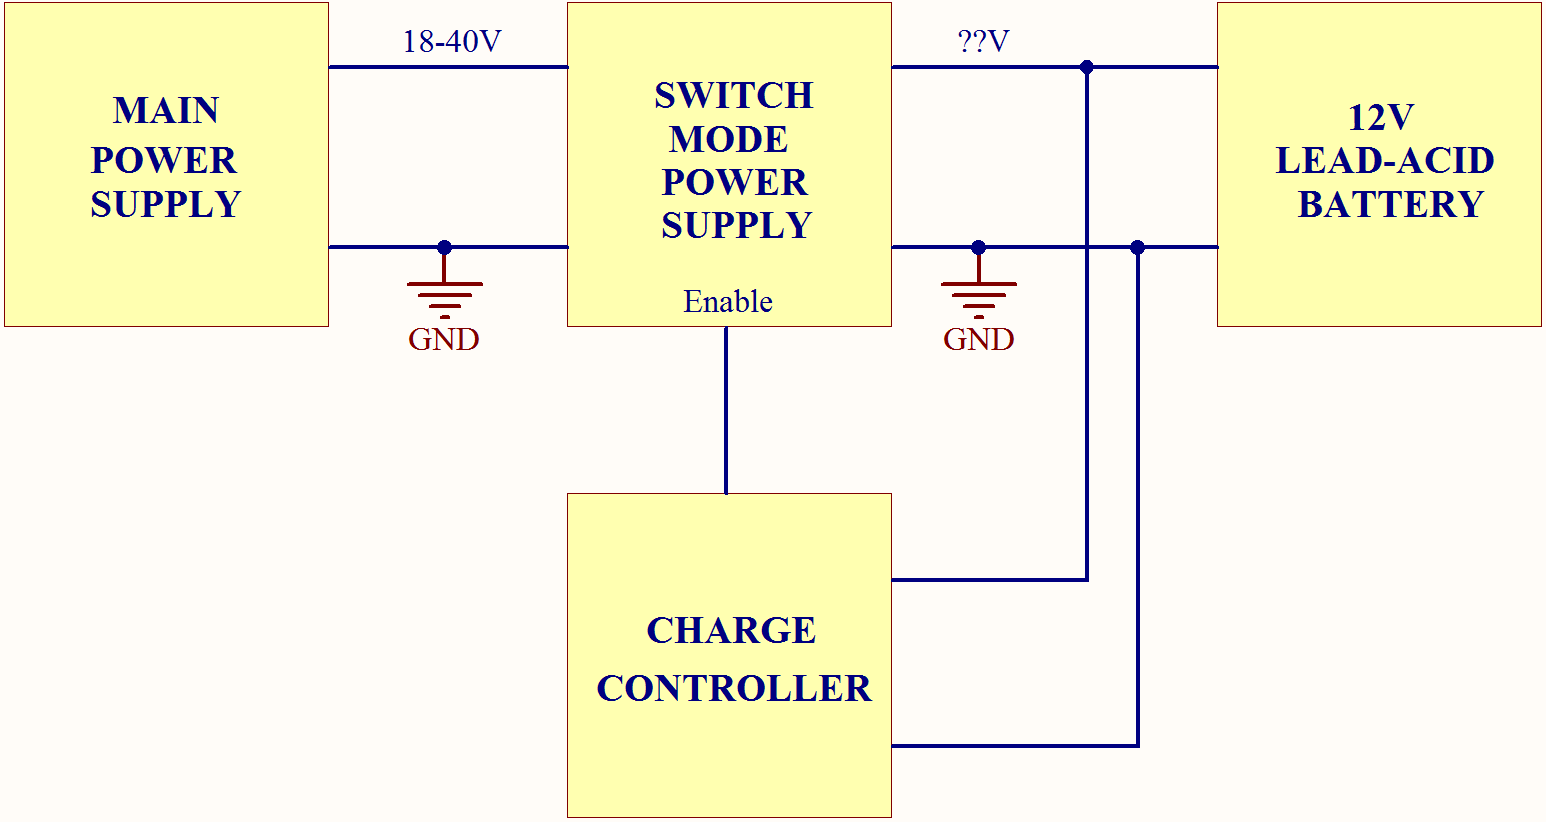 battery charge controller circuit diagram 2001 saturn sc2 ignition wiring stopping criterion of lead acid charging operation